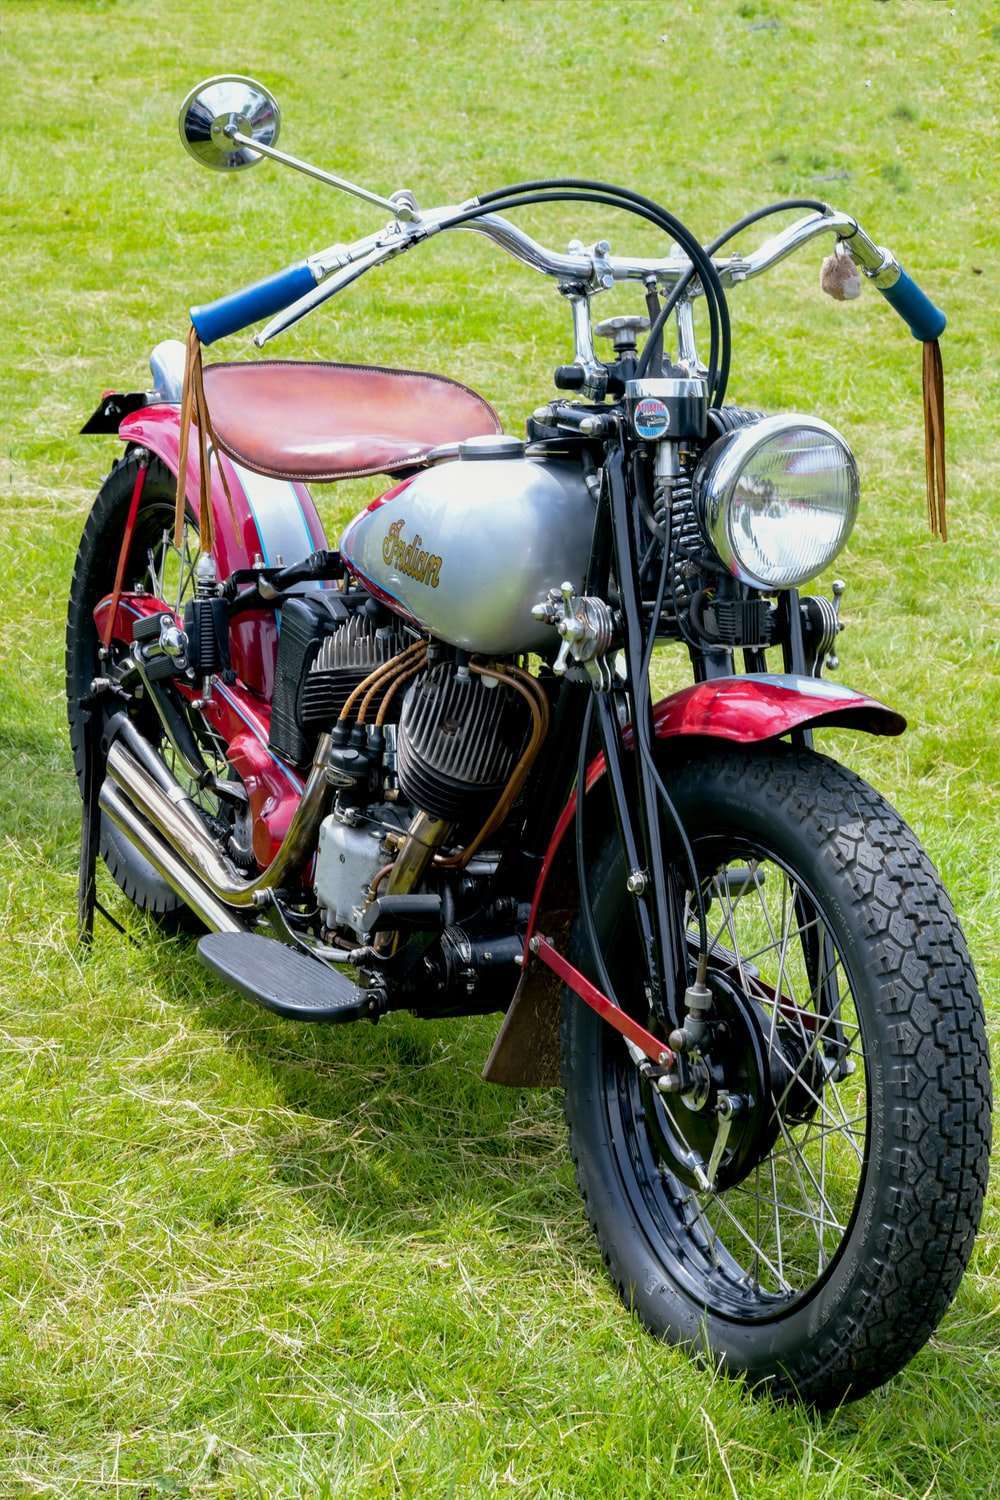 red and black motorcycle on green grass field during daytime